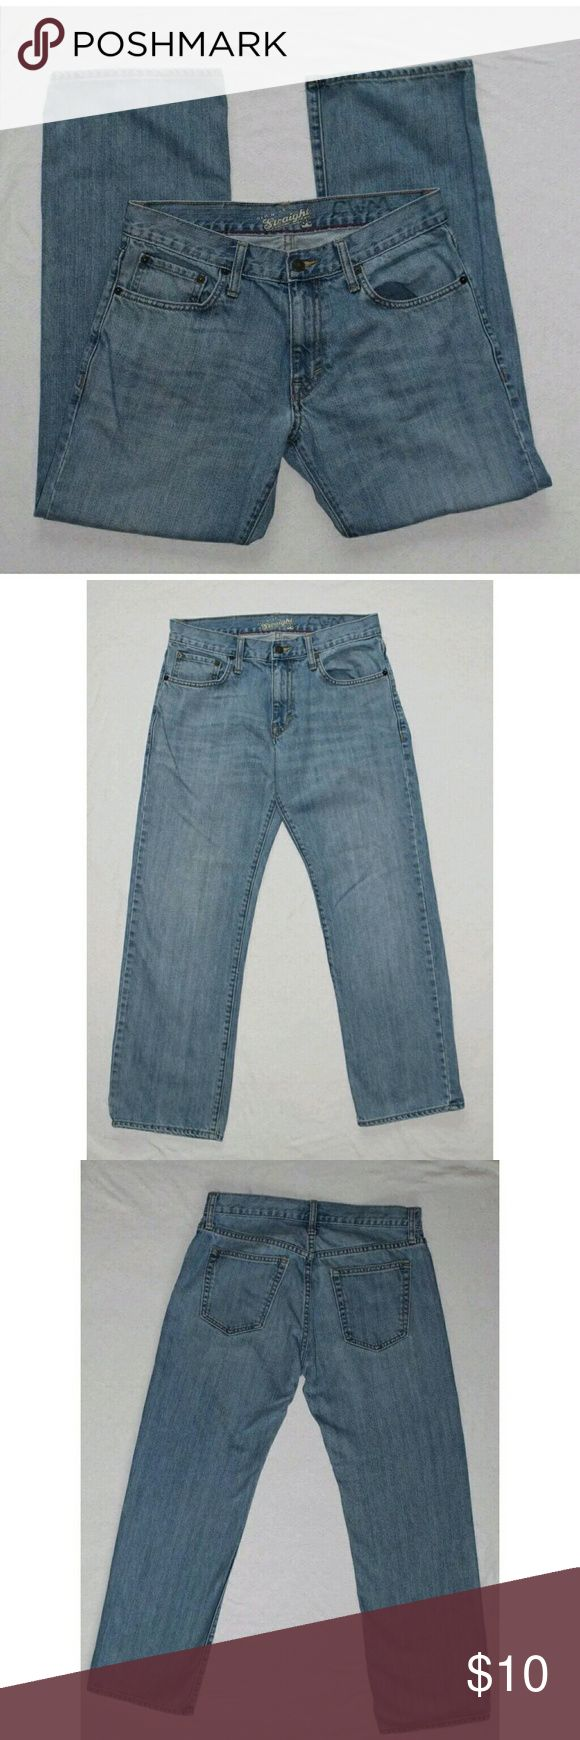 """Old Navy Straight Leg Jeans Mens Old Navy Straight Leg Jeans Good overall condition Some wear on hems as shown in pictures #1 and #3 Permanent marker on inside of back waistband as shown in pictures #5 and #7 Size 30x30 (Measured at 30x29)  Measurements are approximate and were taken with garment laying flat  Waist: 15"""" Hips: 20 1/2"""" Inseam: 29"""" Outseam: 36 1/2"""" Front Rise: 9 1/2"""" Back Rise: 14"""" Leg Opening: 8 1/2""""   Item is used. Thank you for shopping my closet!     (181) Old Navy Jeans…"""